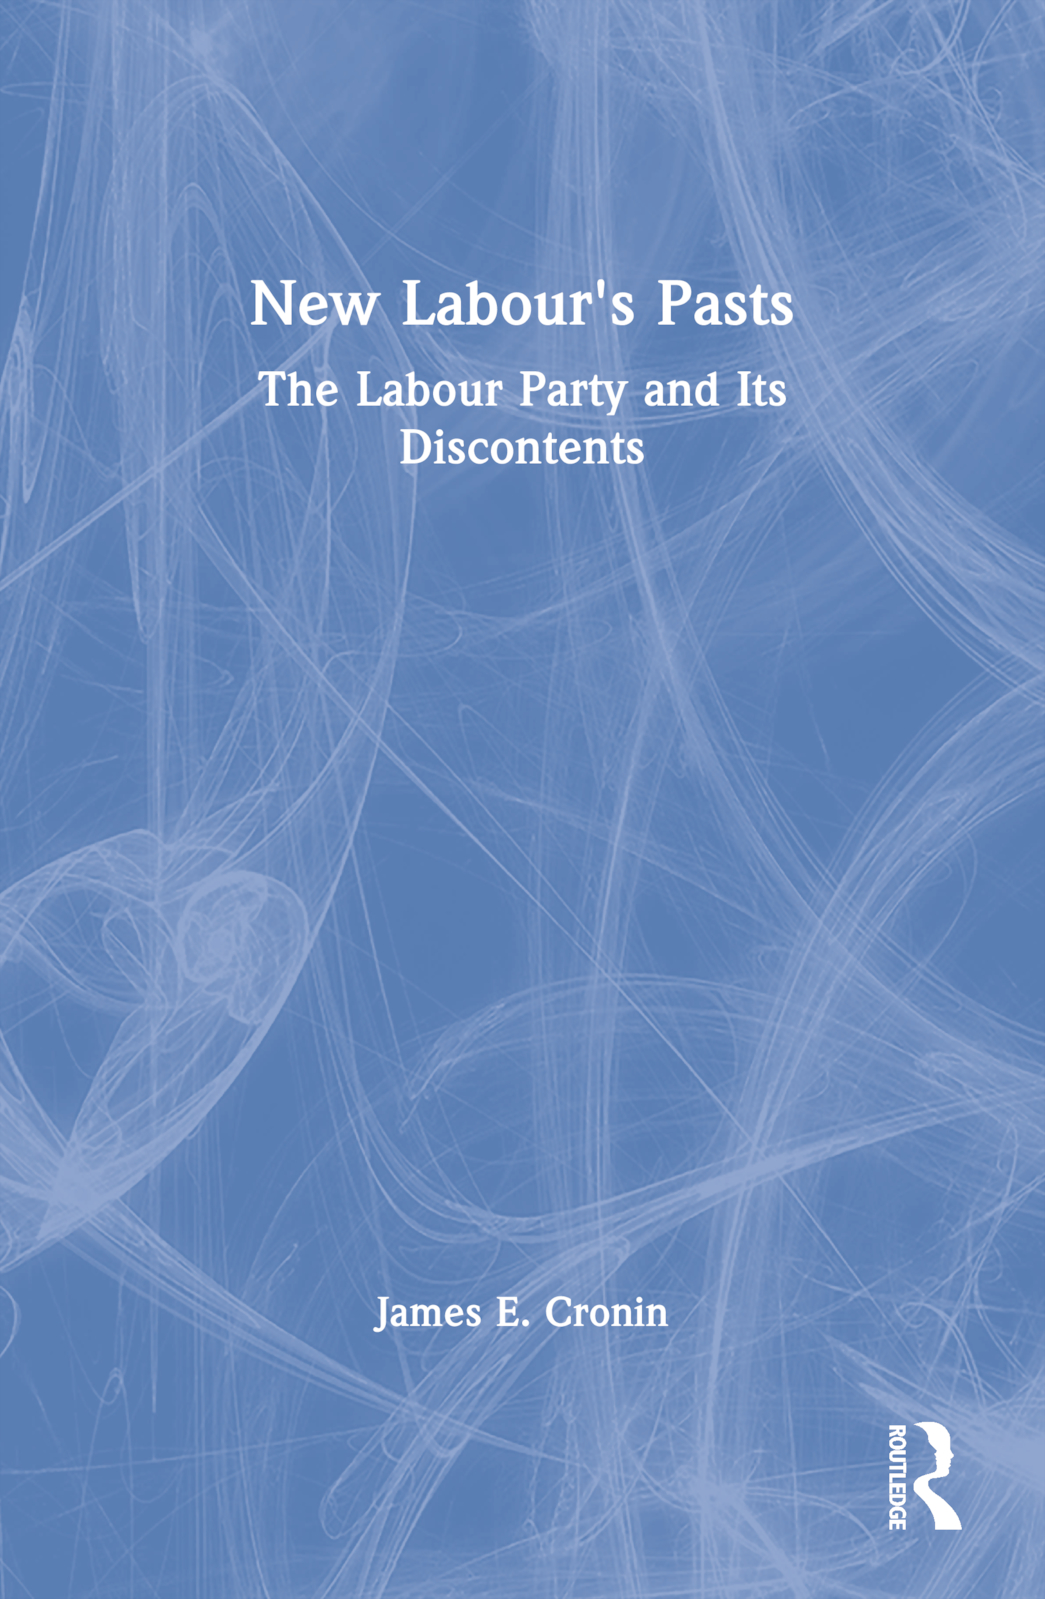 New Labour's Pasts: The Labour Party and Its Discontents book cover